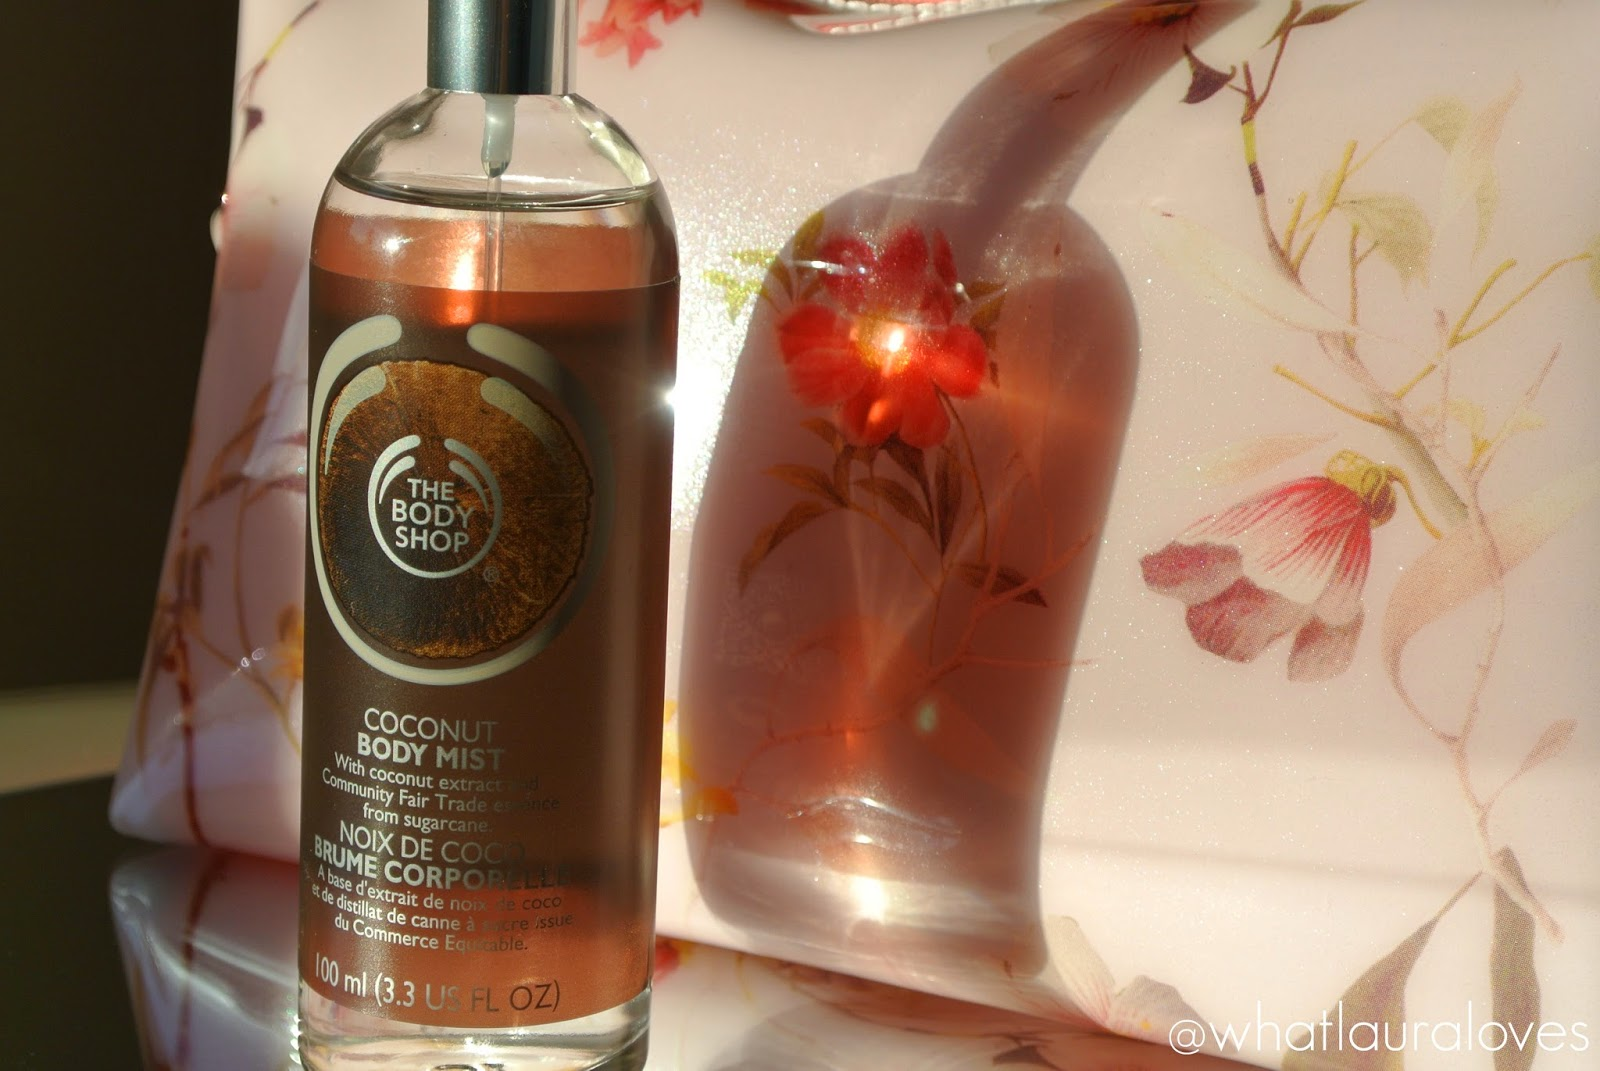 The Body Shop Coconut Range Gift Set Coconut Body Mist